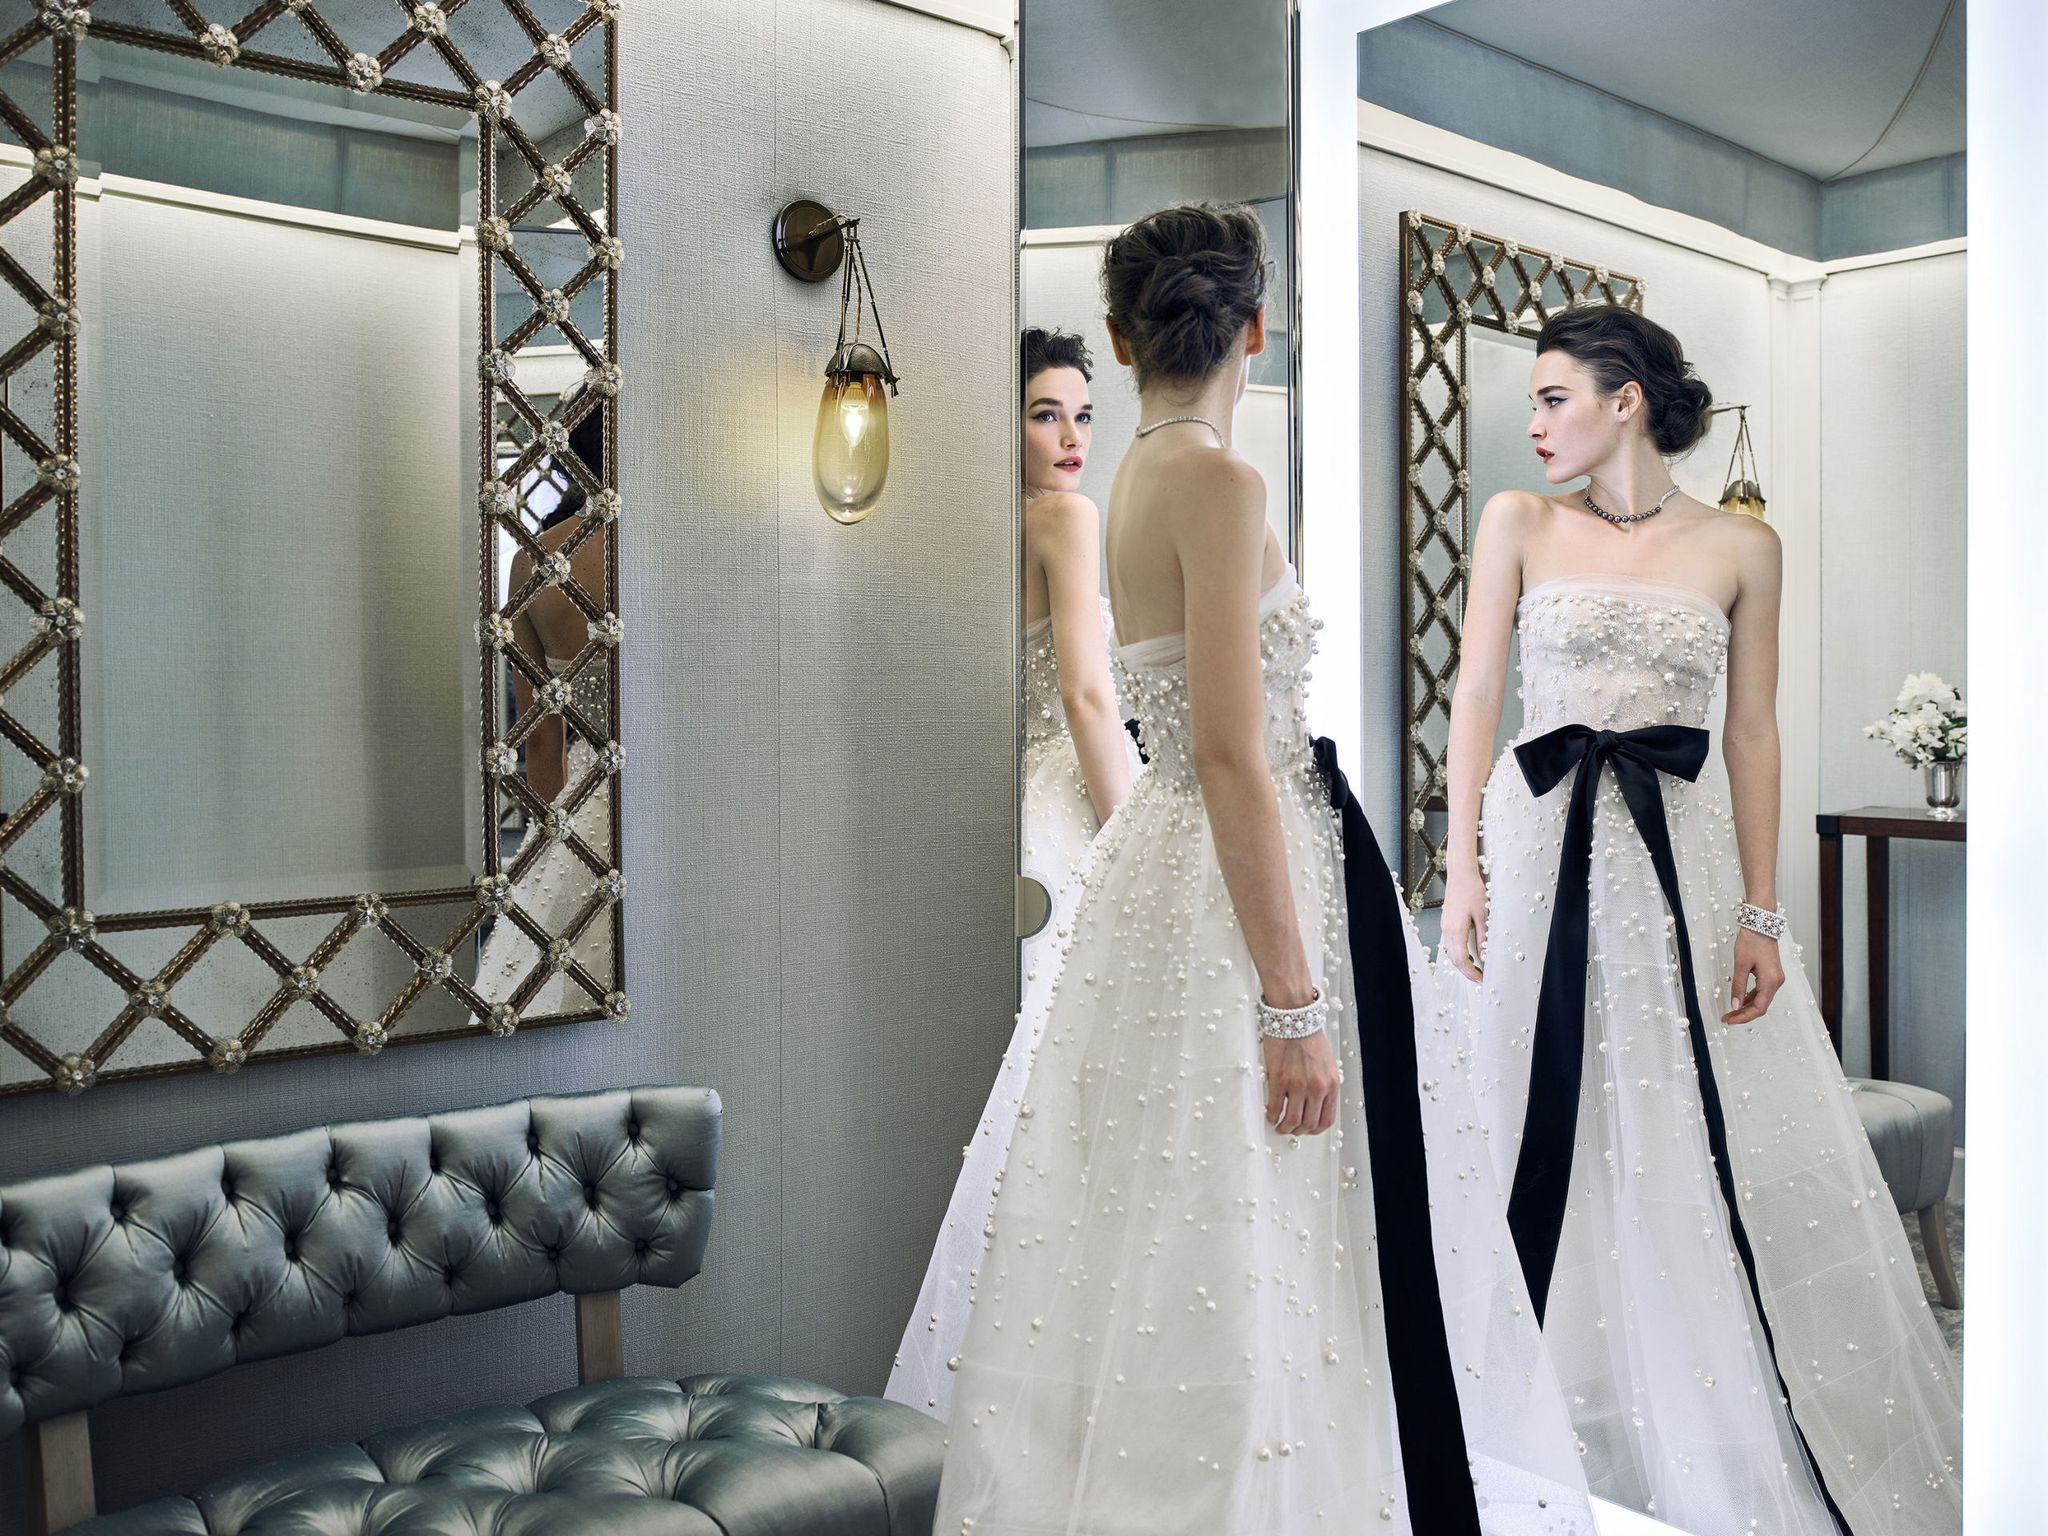 When Should You Start Wedding Dress Shopping?